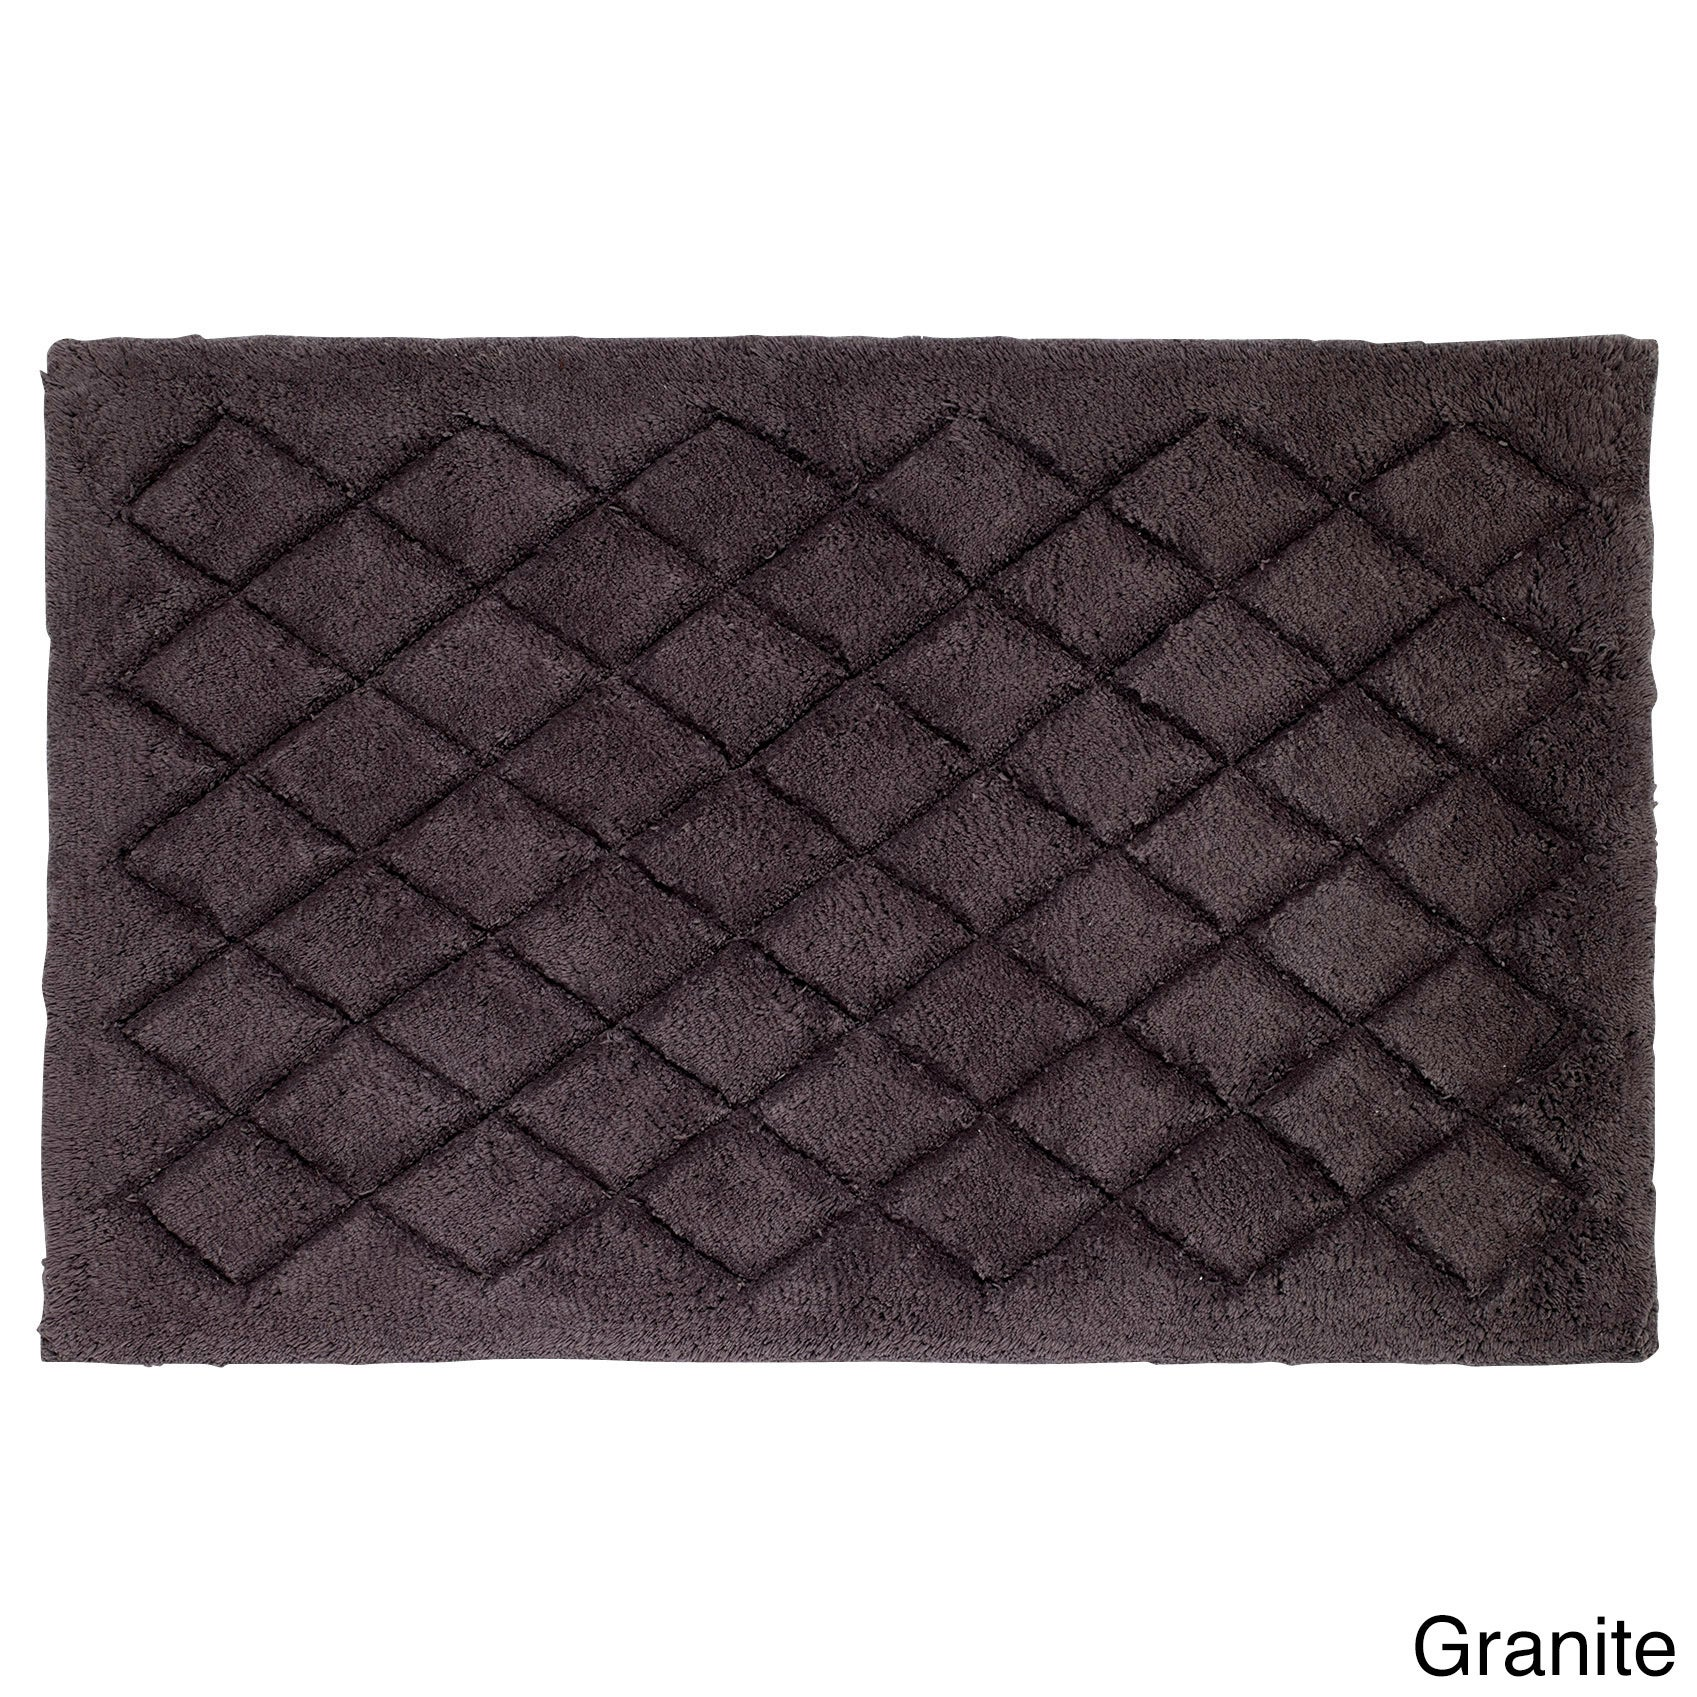 avanti solid color bath rug (21 x 34) | ebay